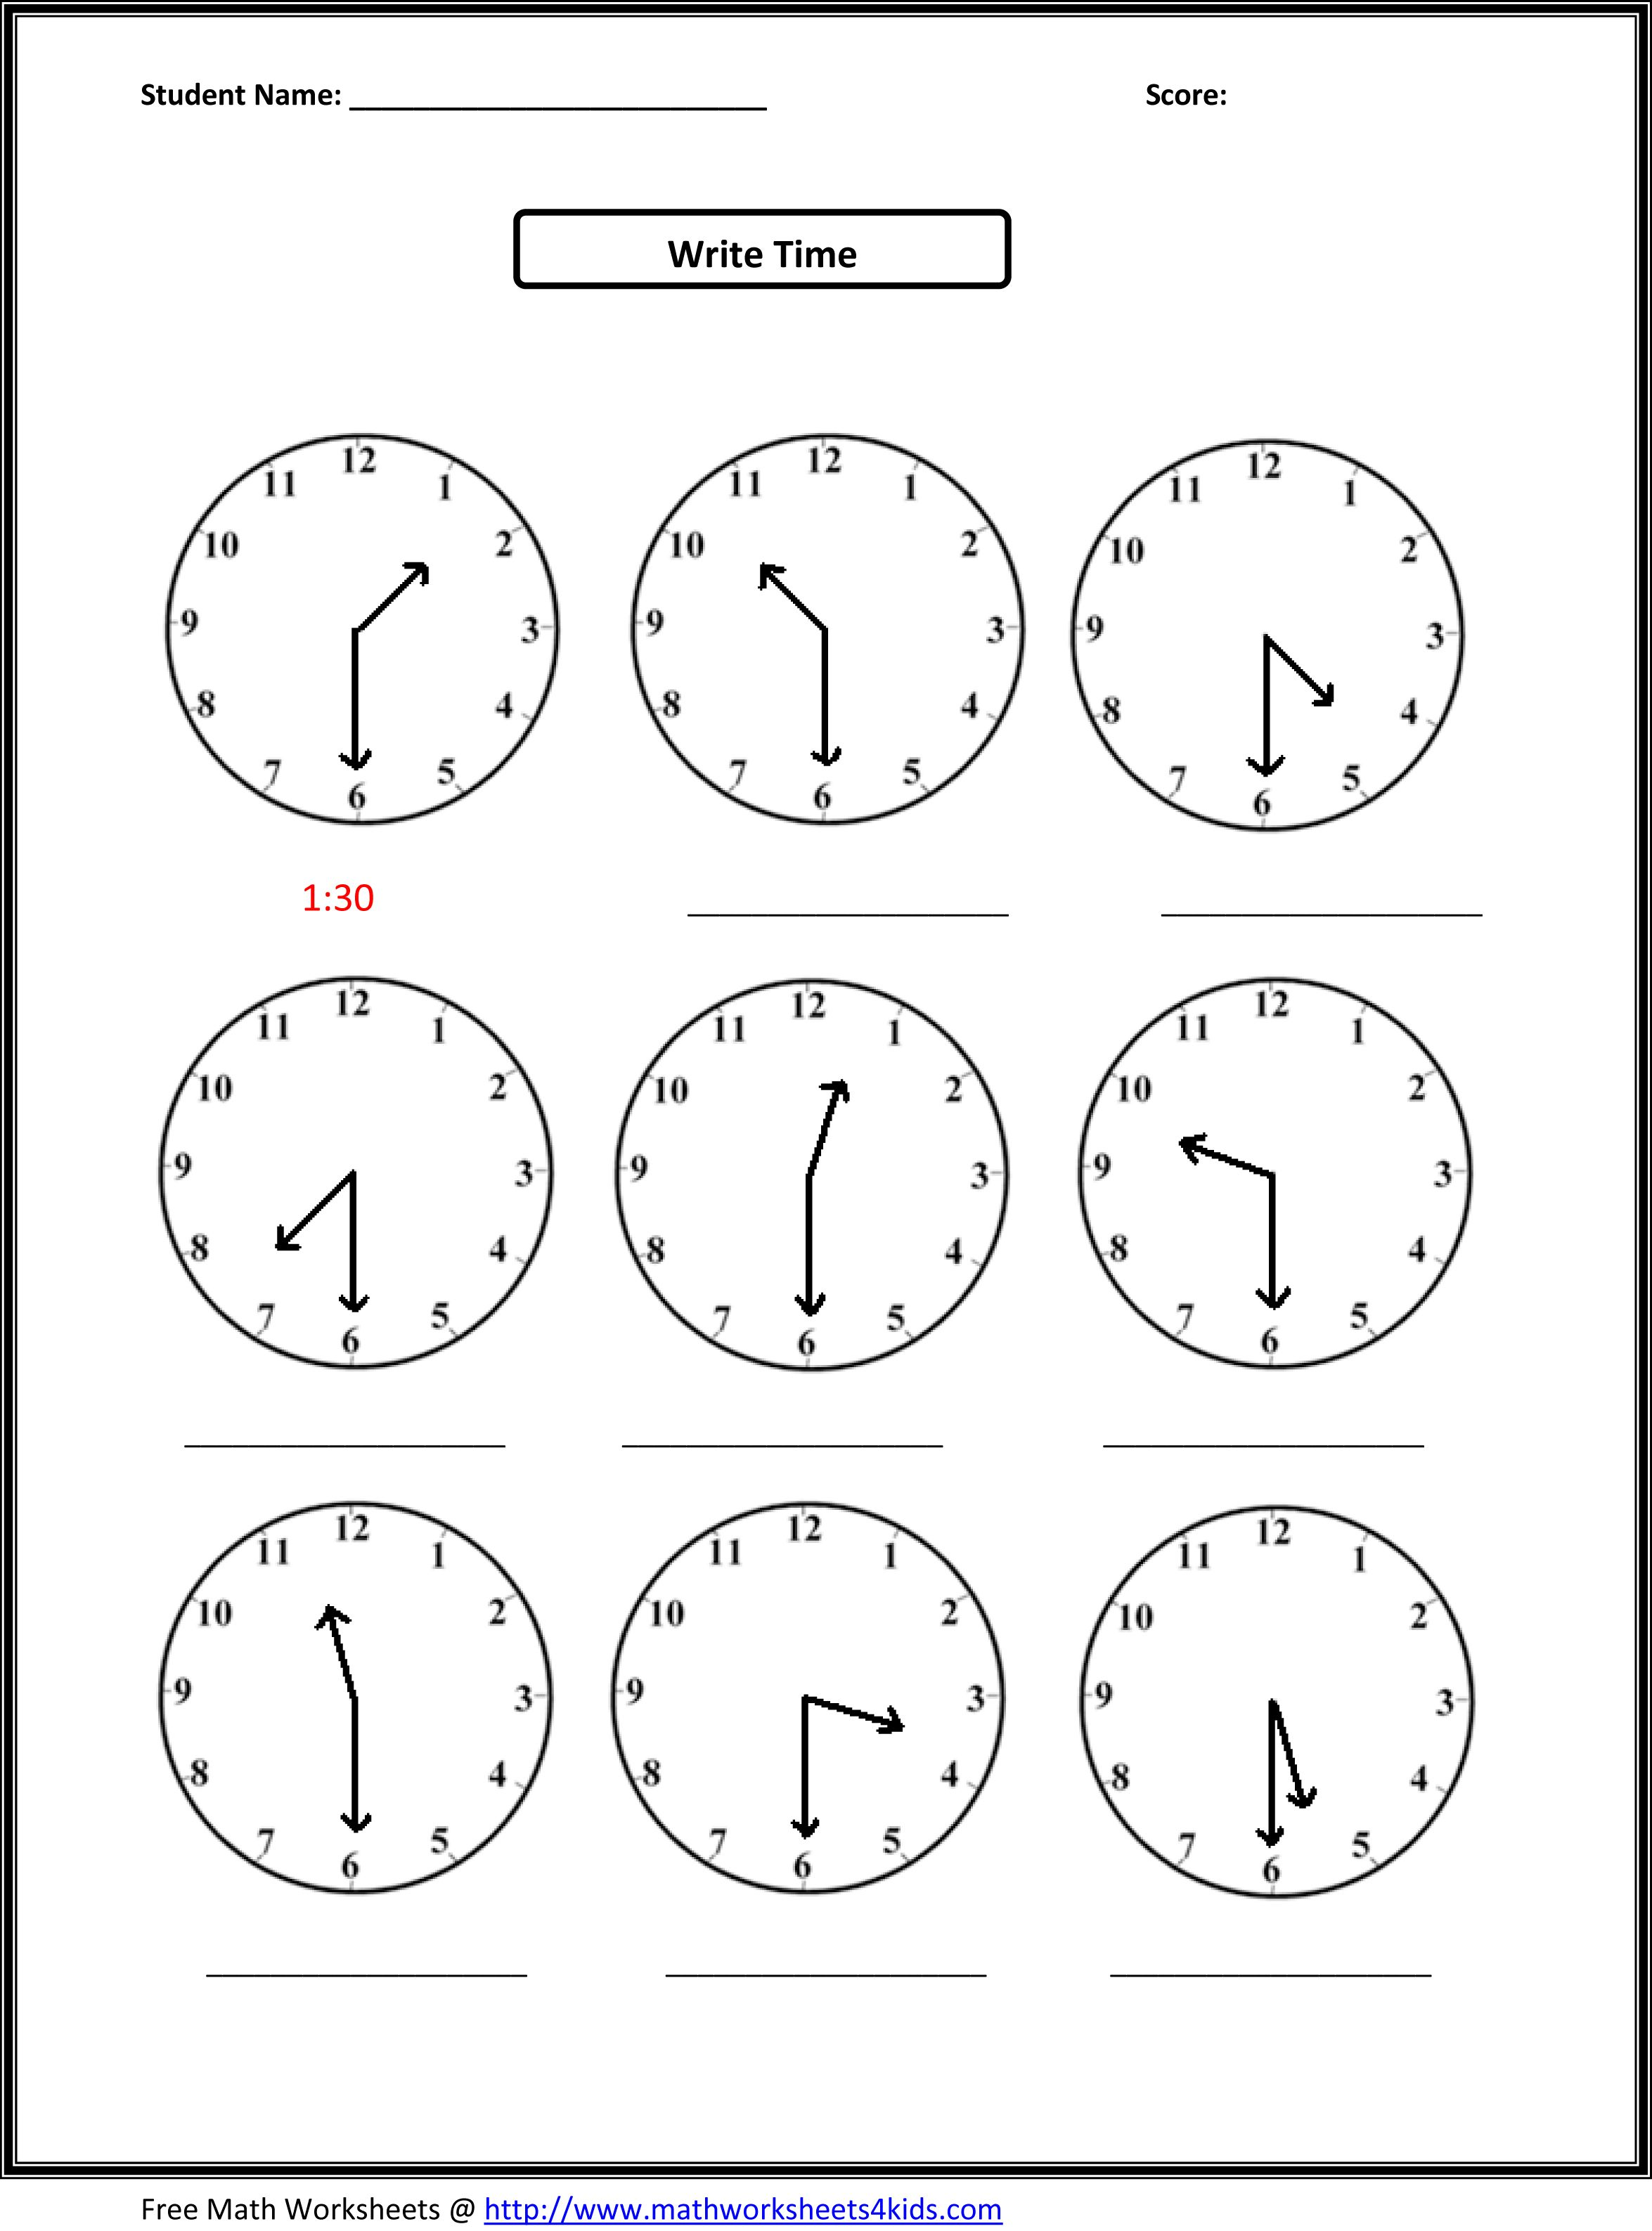 Weirdmailus  Wonderful Worksheet On Time For Grade   Reocurent With Heavenly Free Printable Telling Time Worksheets Nd Grade  Reocurent With Divine Fact And Opinion Worksheet Th Grade Also Adjectives To Adverbs Worksheet In Addition Super Teacher Worksheets Addition And Subtraction And Math Worksheet Grade  As Well As Grade  Printable Math Worksheets Additionally Intransitive Verb Worksheet From Reocurentcom With Weirdmailus  Heavenly Worksheet On Time For Grade   Reocurent With Divine Free Printable Telling Time Worksheets Nd Grade  Reocurent And Wonderful Fact And Opinion Worksheet Th Grade Also Adjectives To Adverbs Worksheet In Addition Super Teacher Worksheets Addition And Subtraction From Reocurentcom